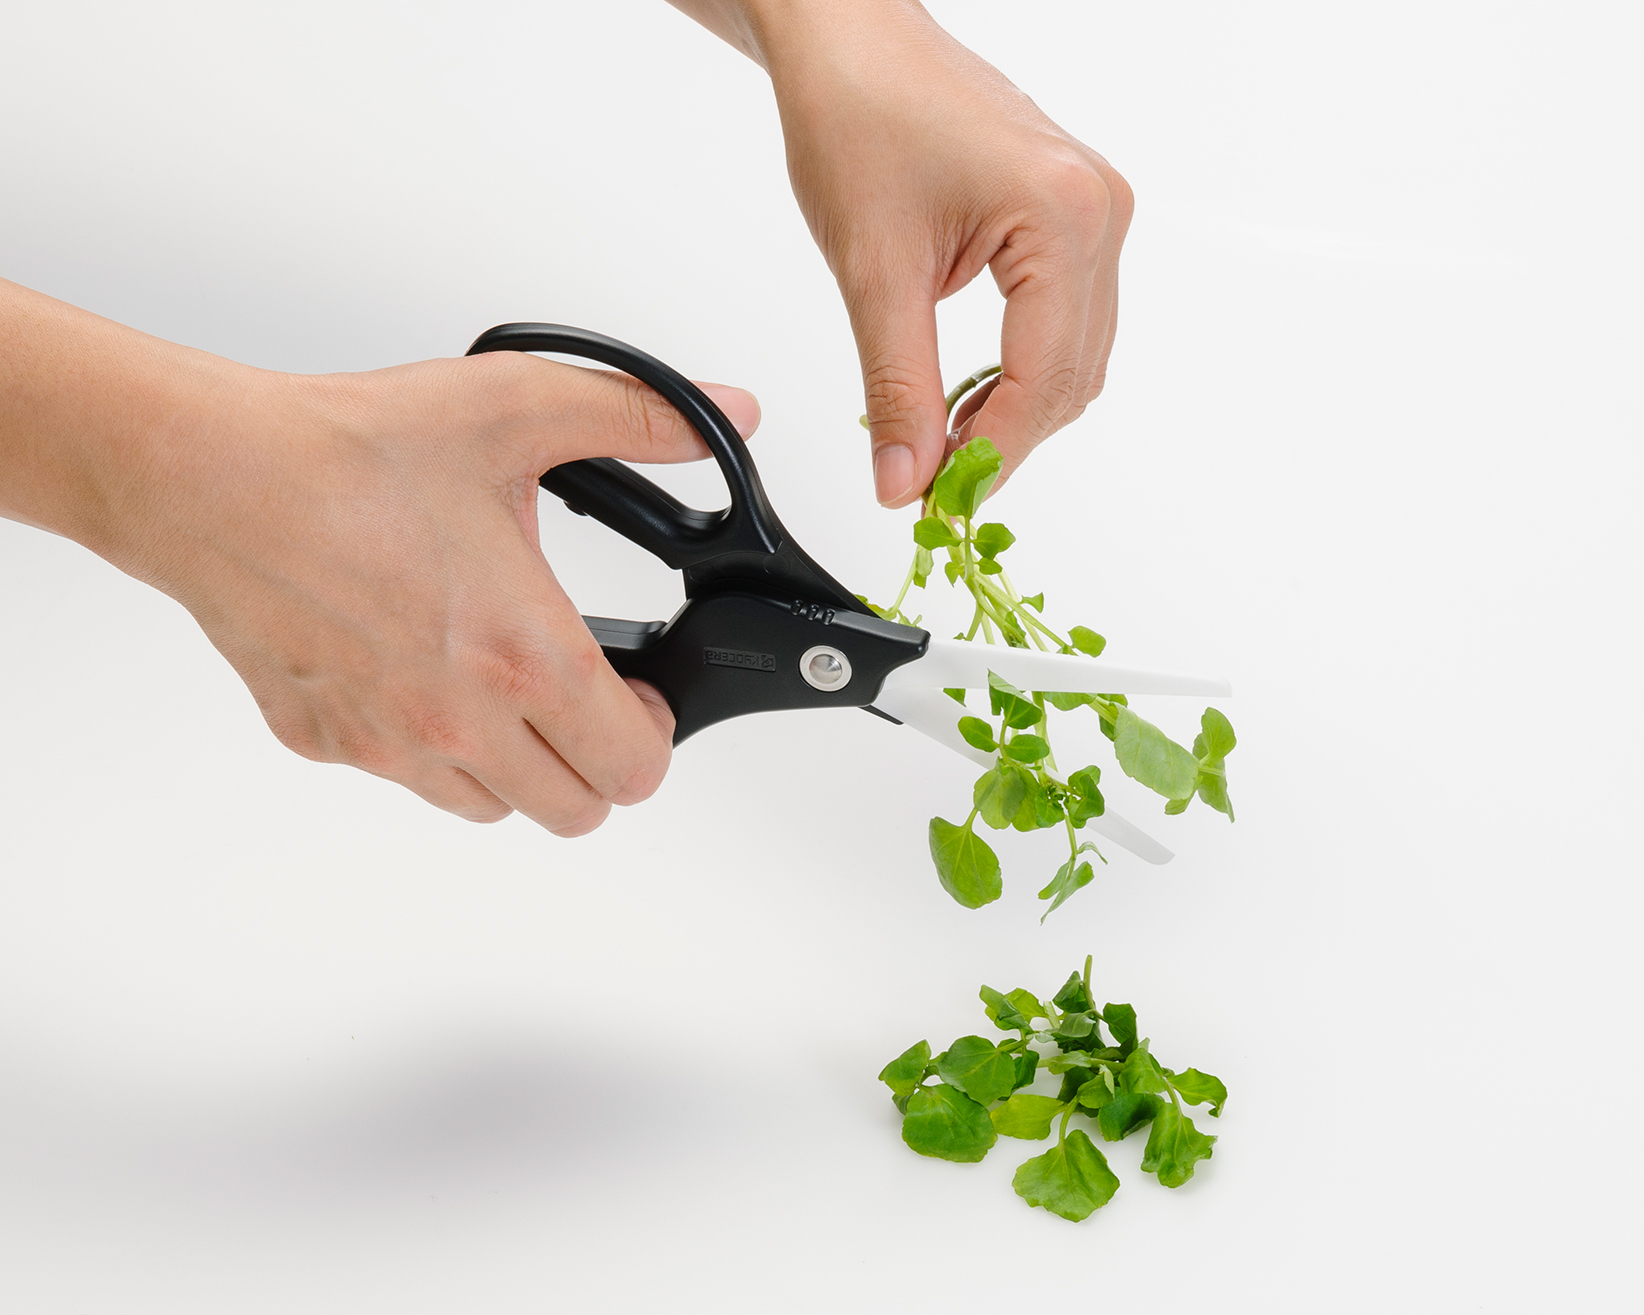 ... The Kyocera Ceramic Kitchen Scissors Offer Long Lasting Sharpness And  Accuracy In The Kitchen. The Ceramic Blade Never Rusts And Doesnu0027t Transfer  Metals ...